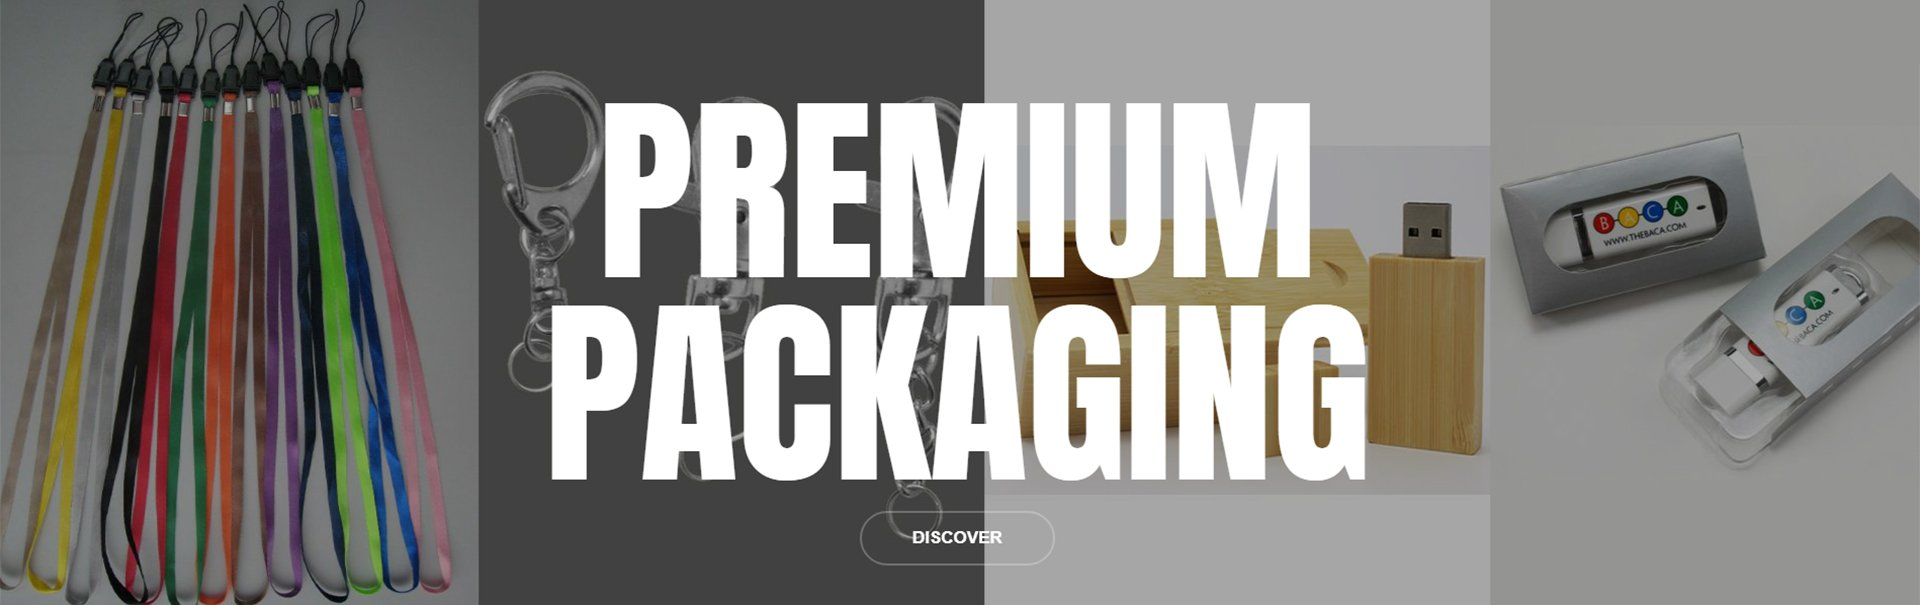 Premium USB Packaging